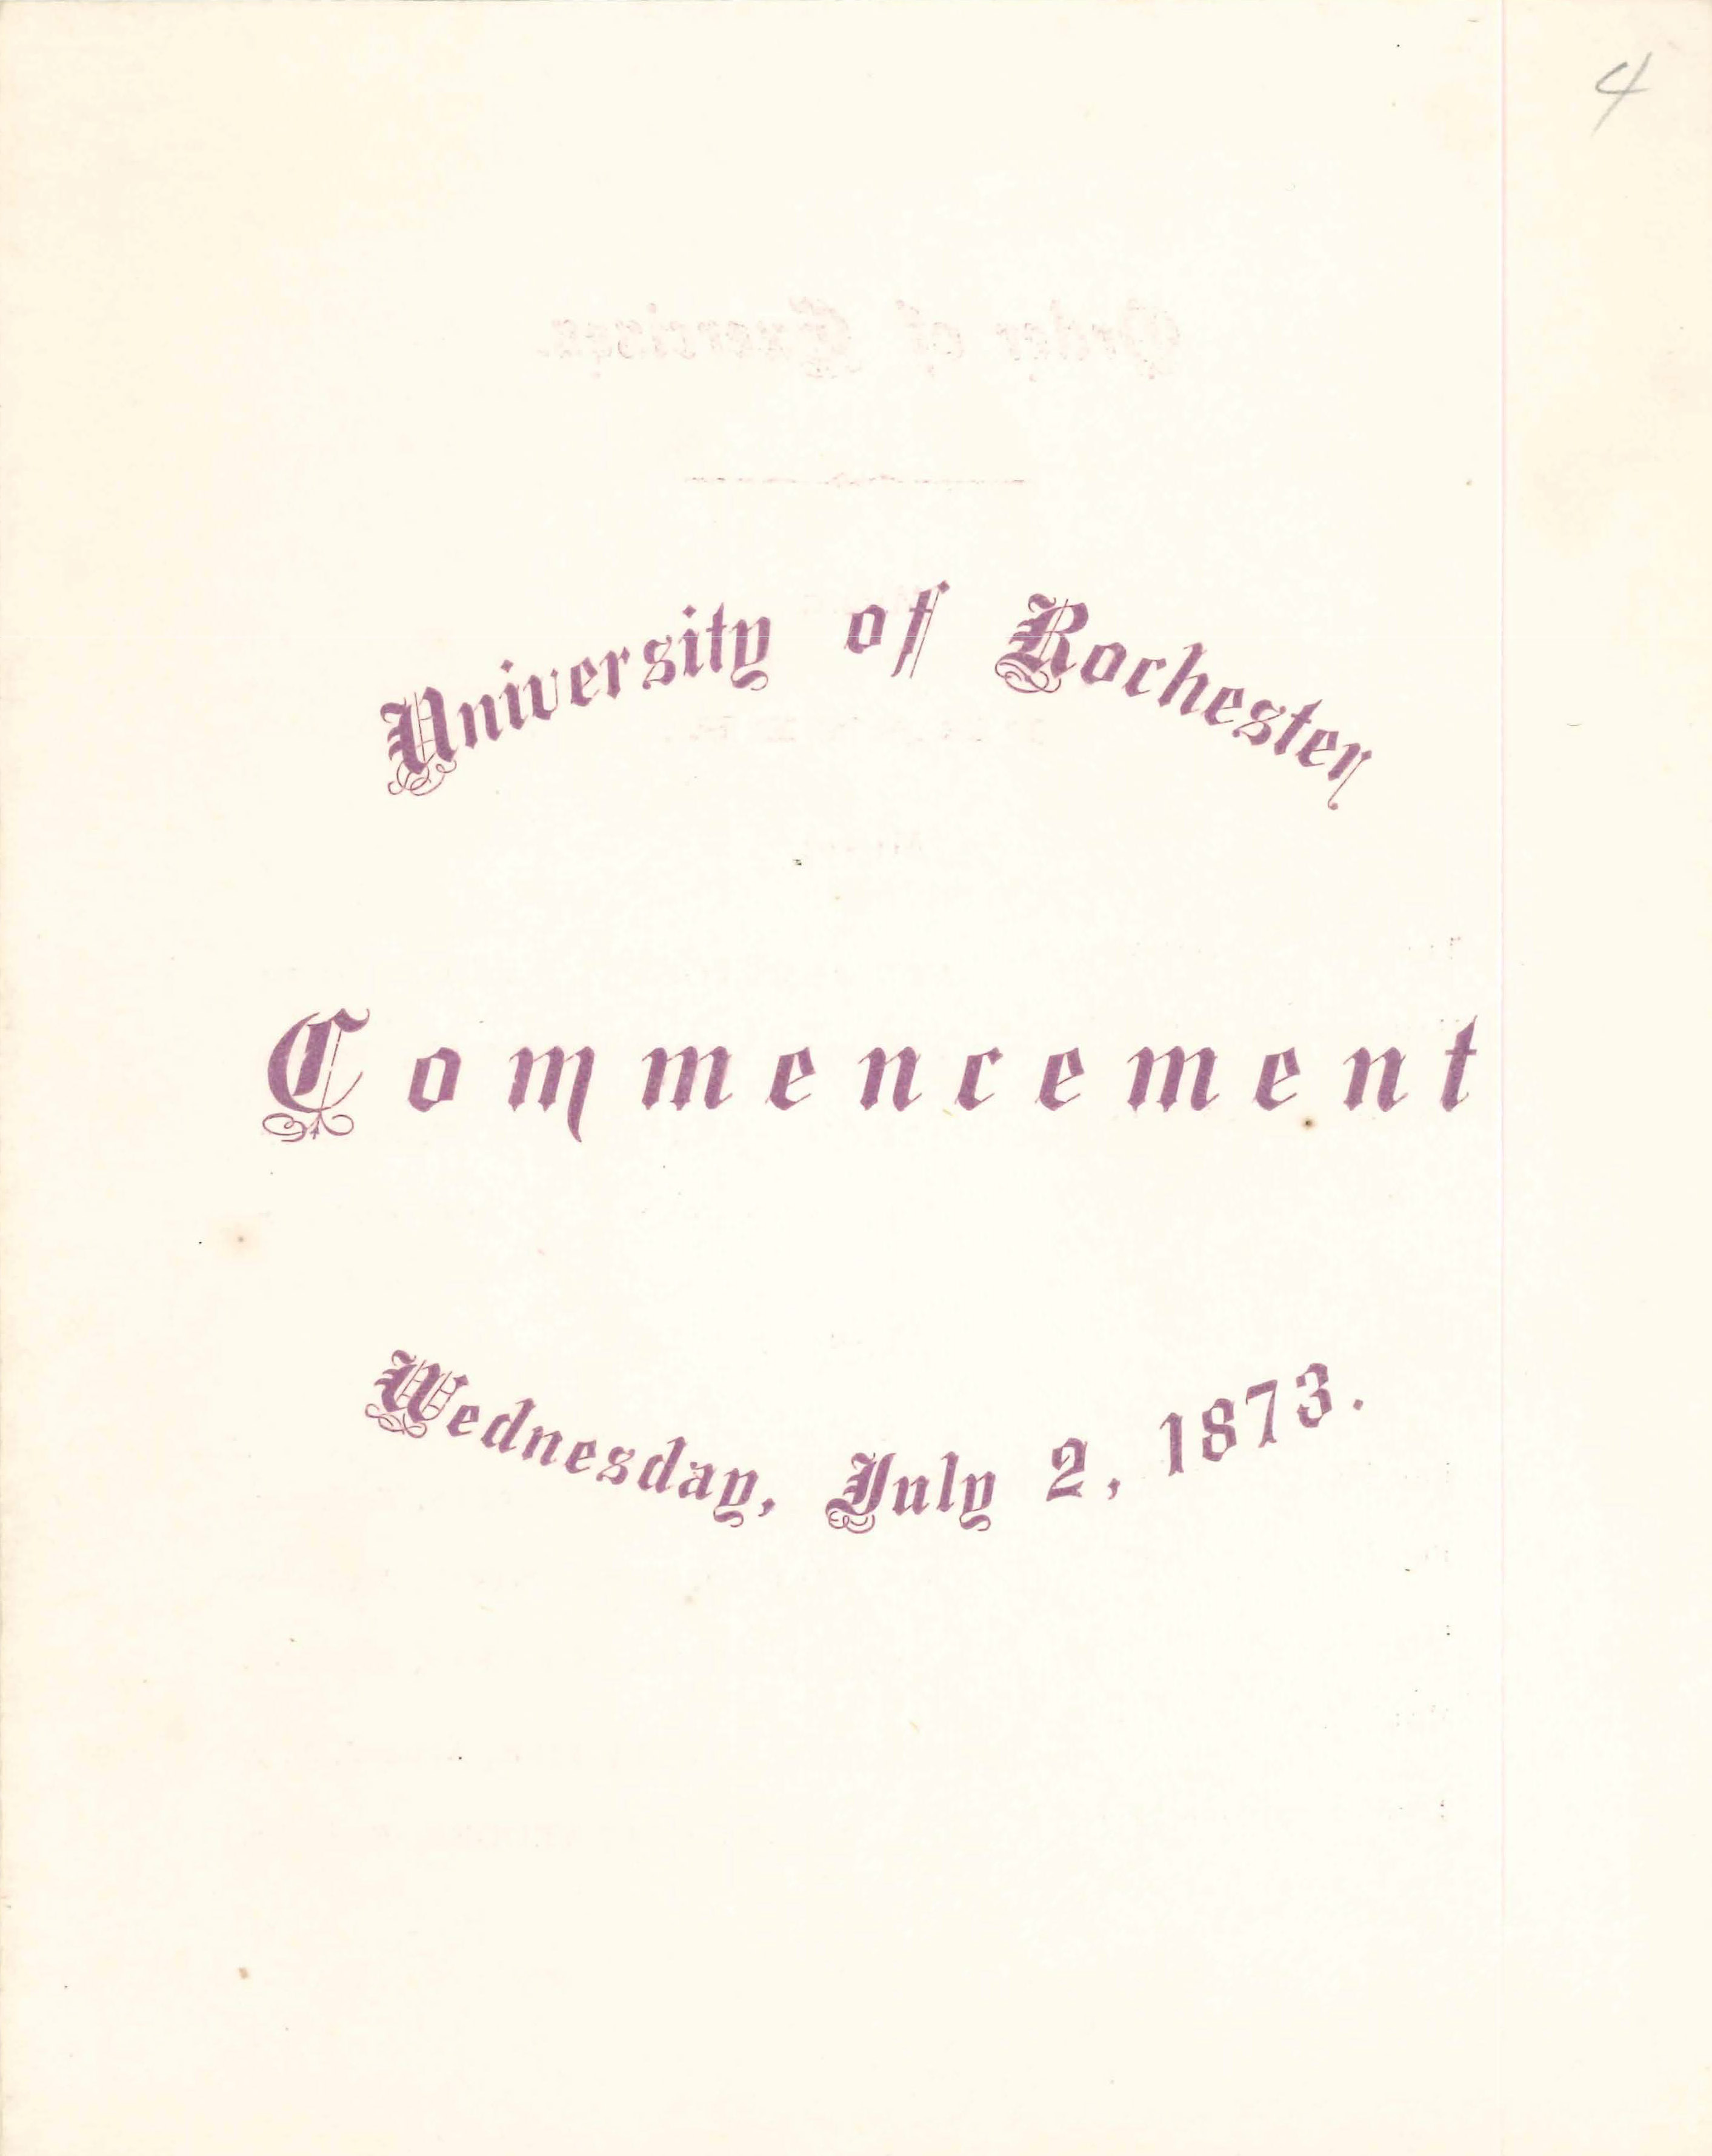 Commencement program, 1873